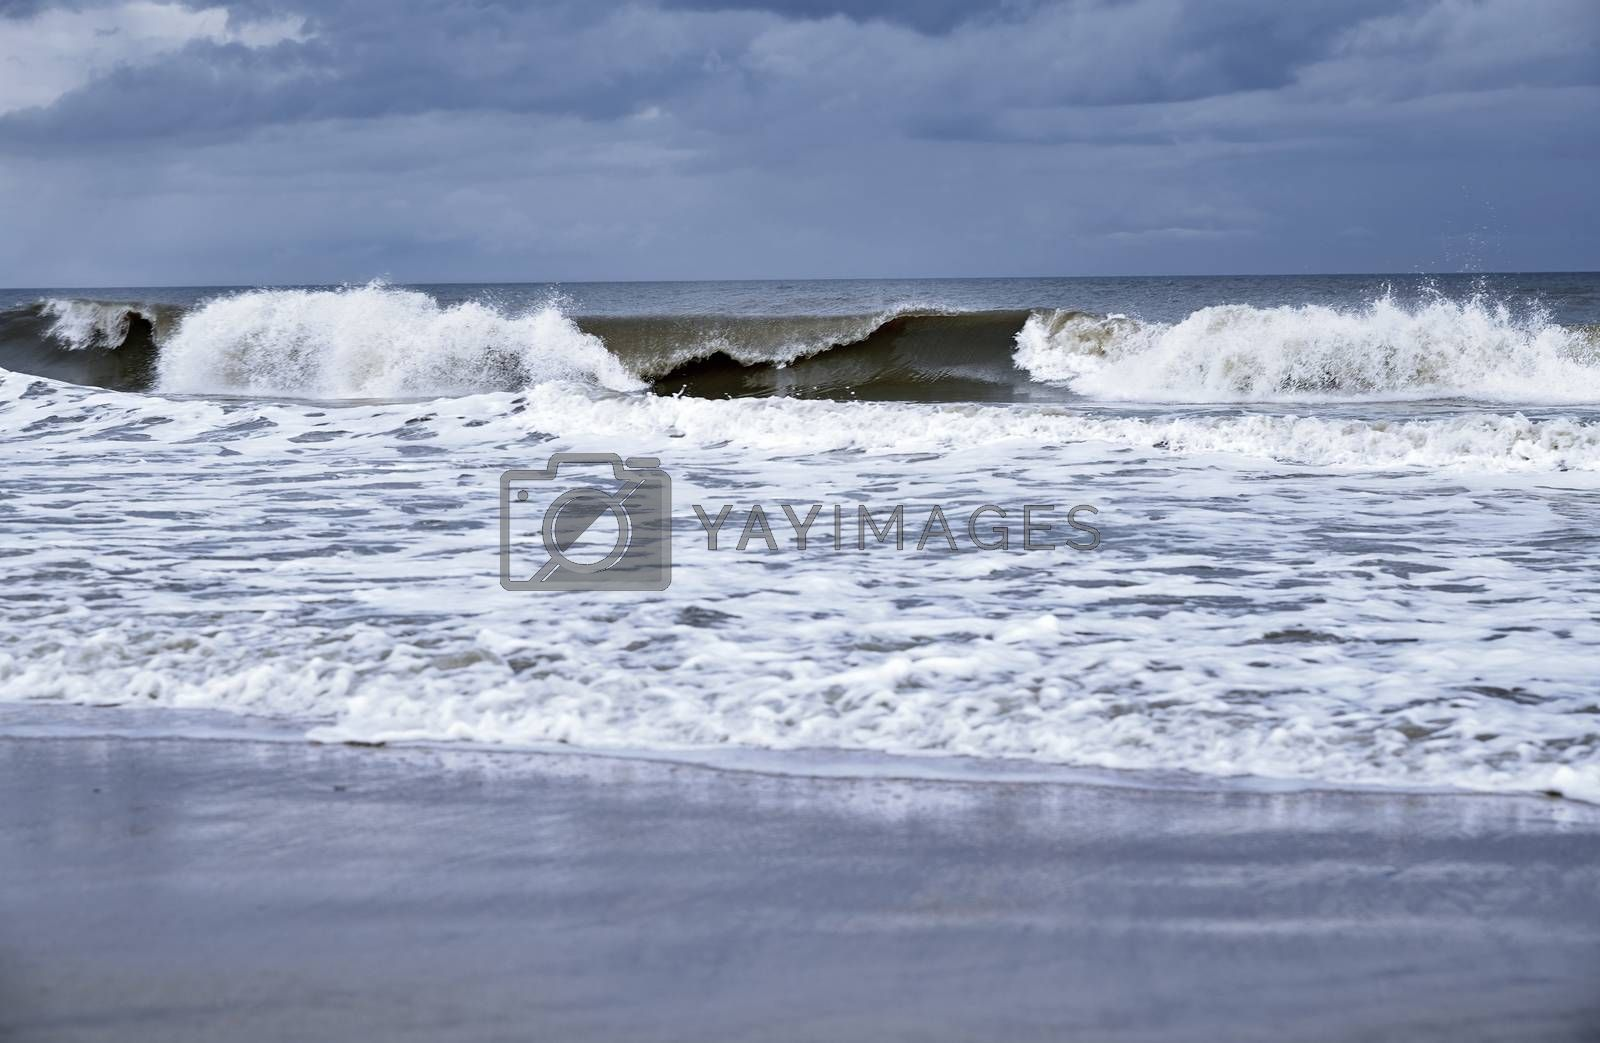 Rough water and waves in Pacific Ocean